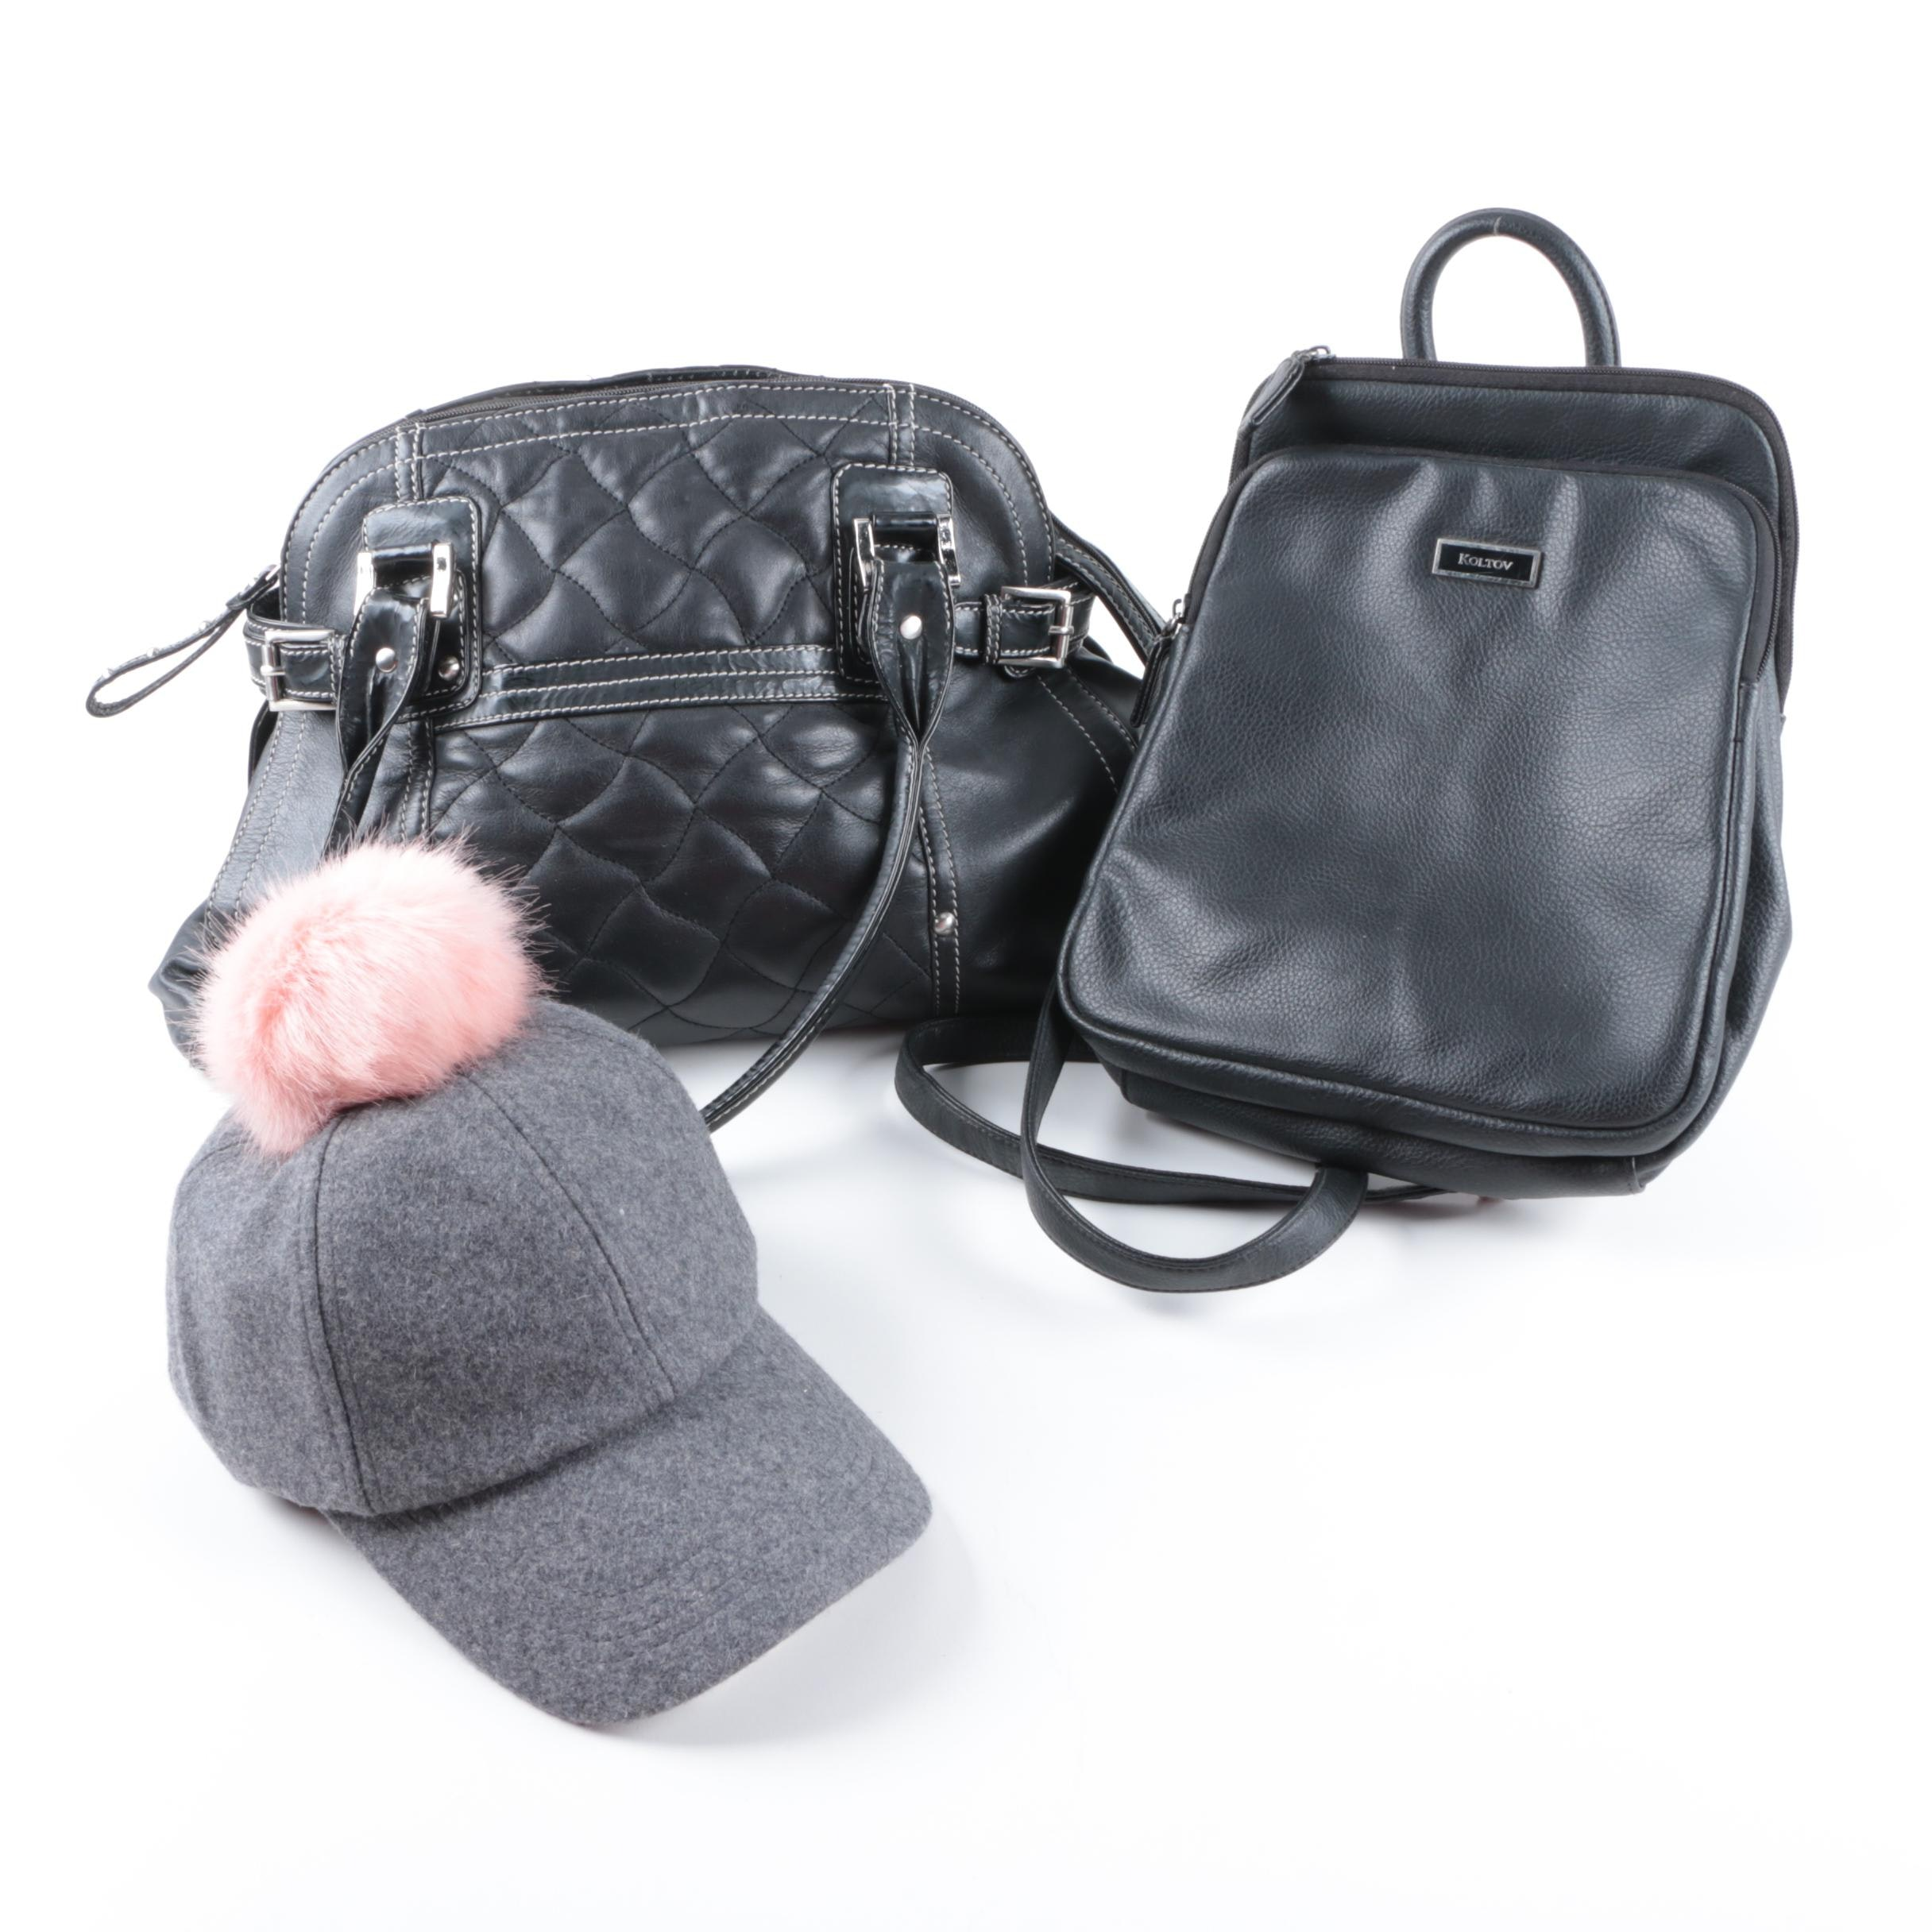 Two Handbags and Asos Hat